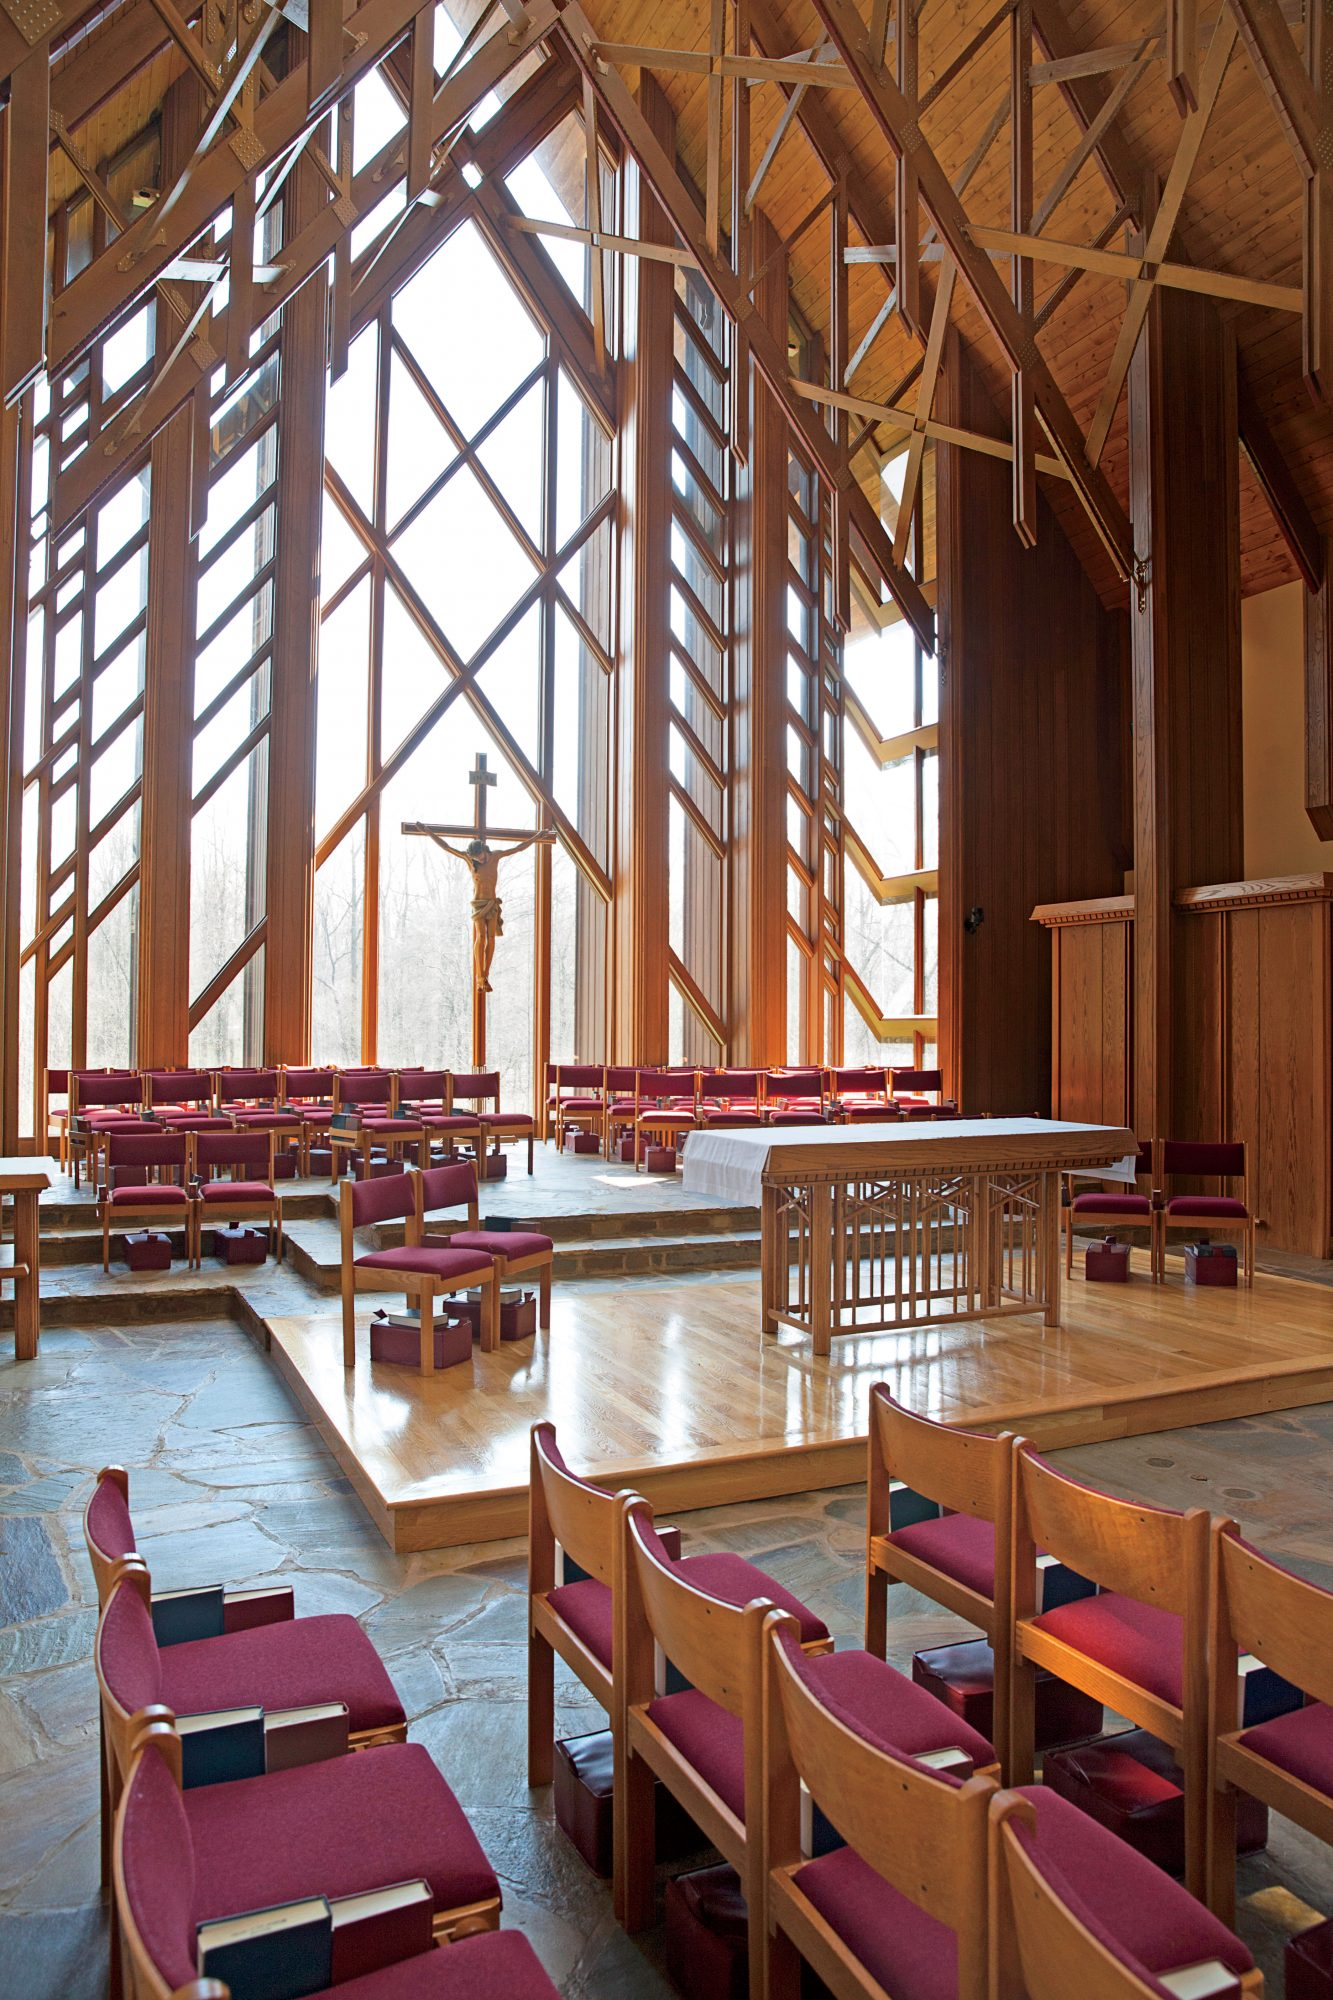 Chapel of the Apostles (Seminary Chapel) in Sewanee, Tennessee